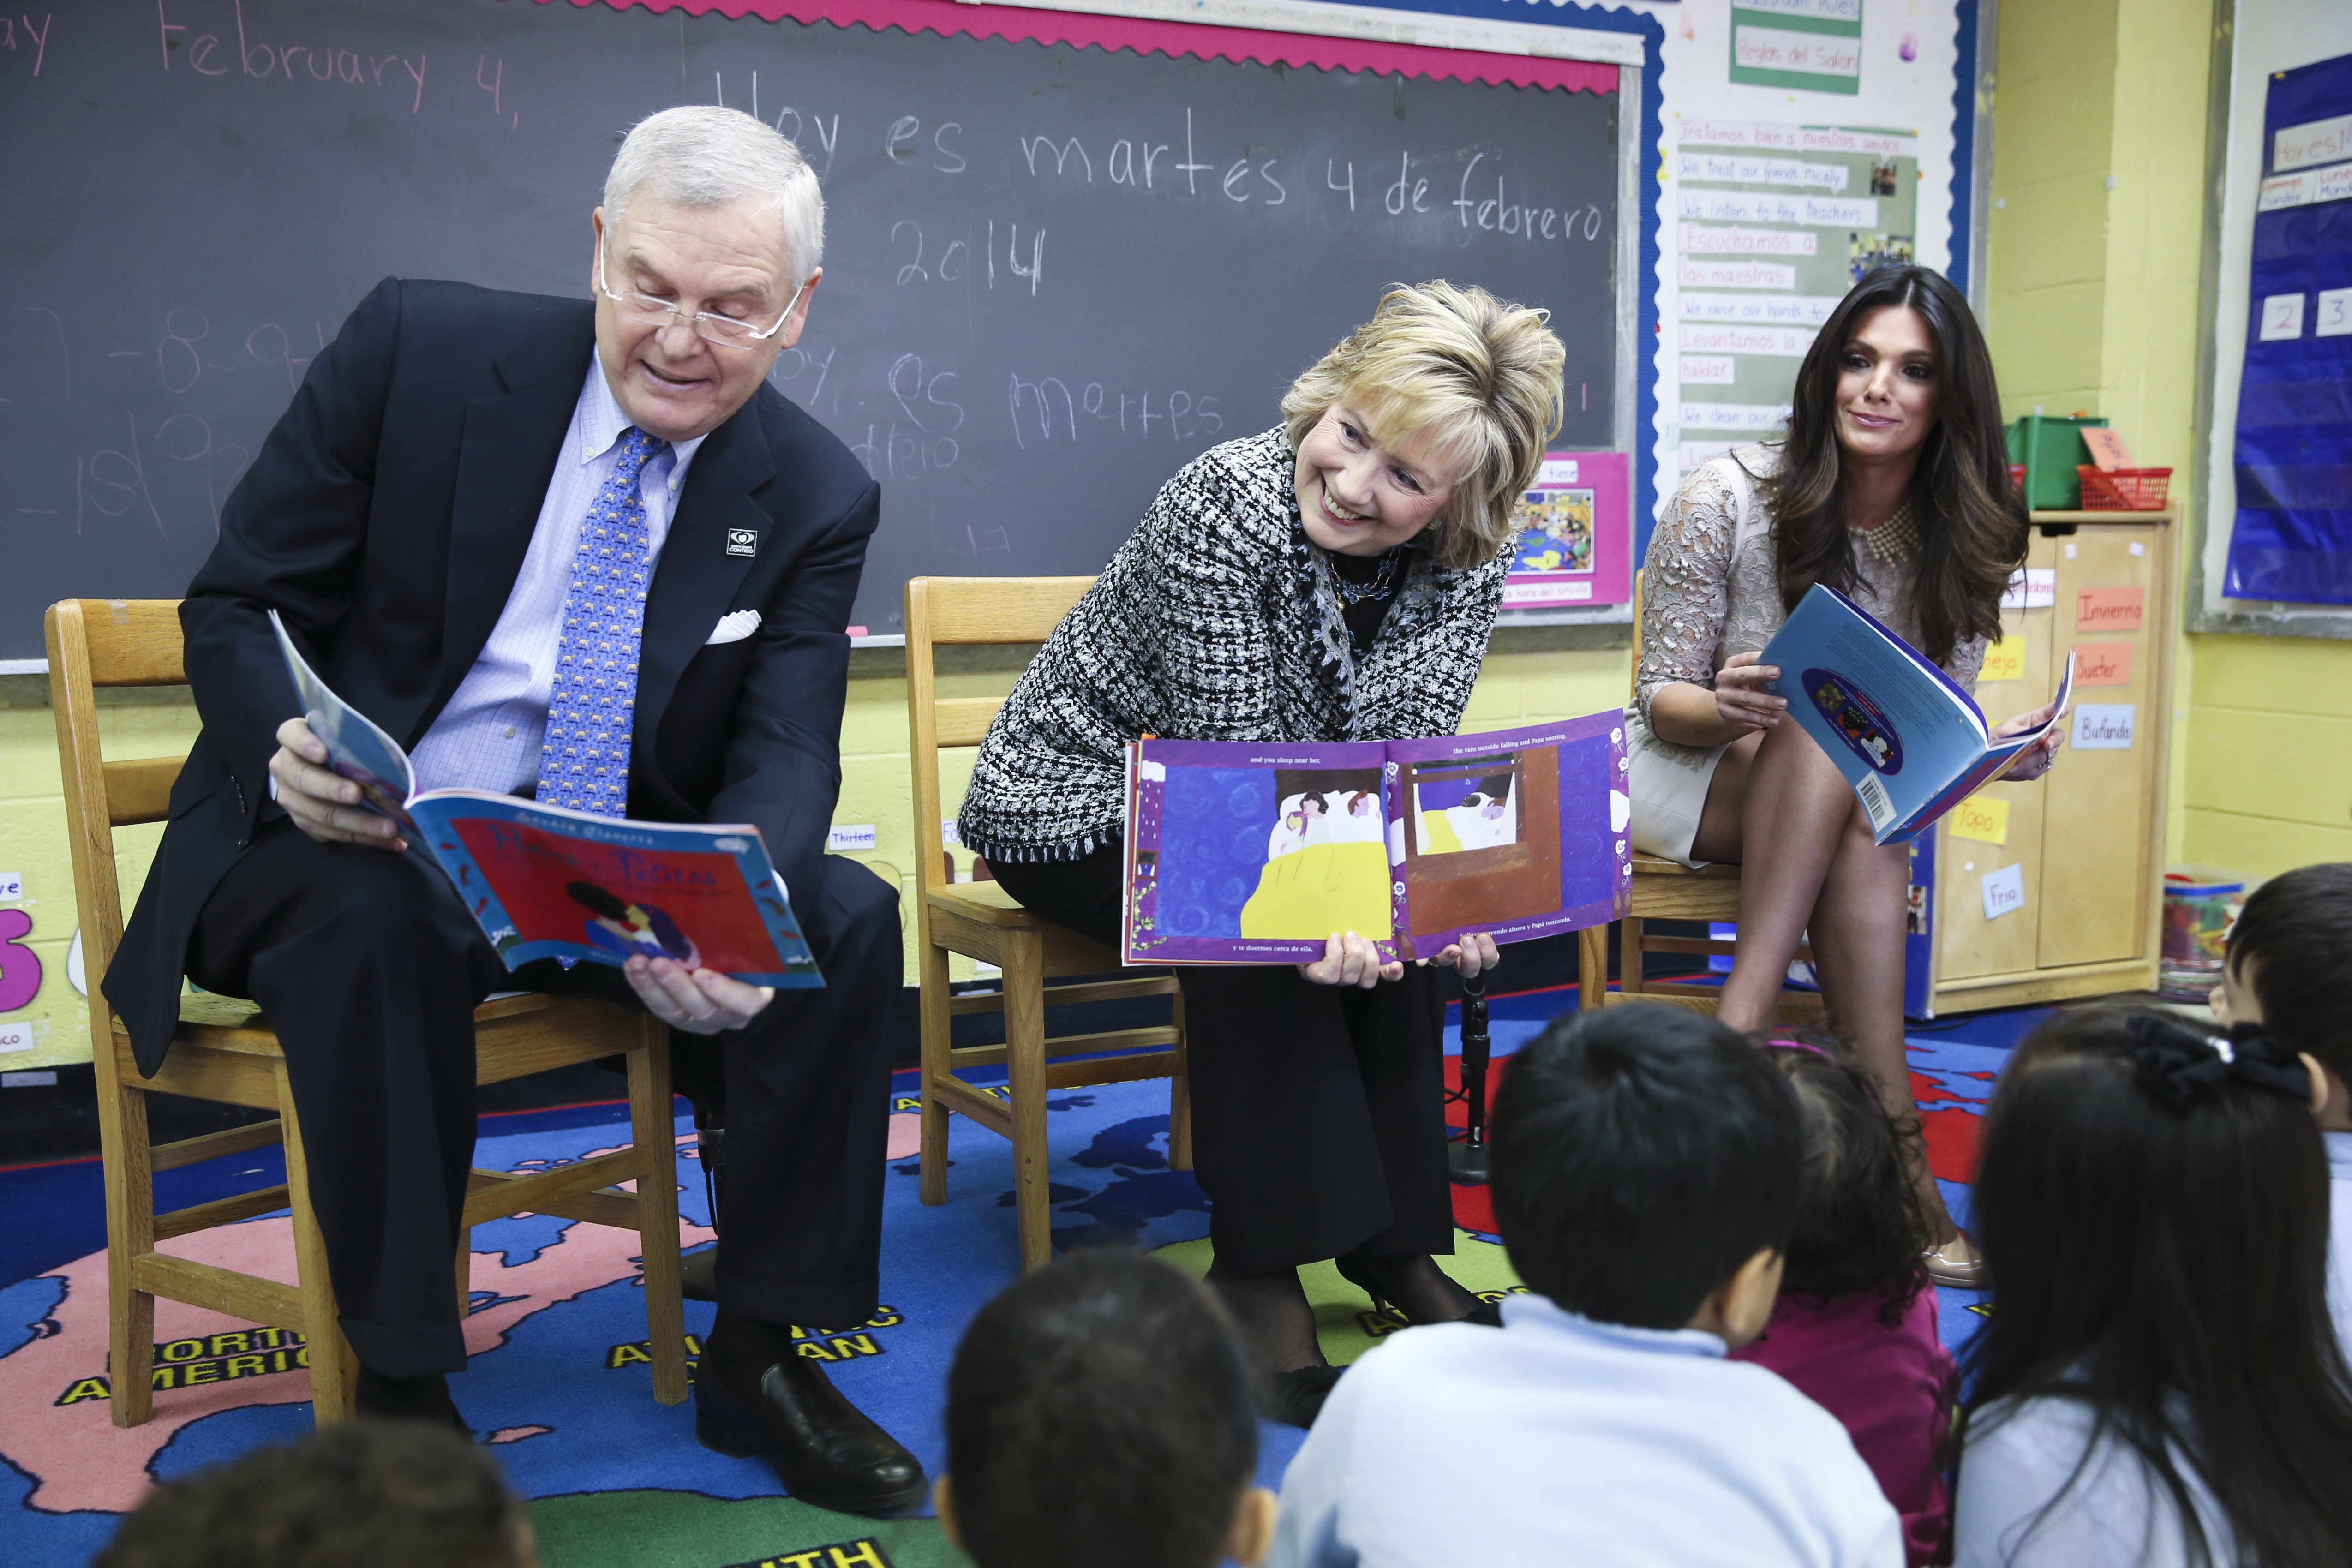 Hillary Rodham Clinton, center, alongside Randy Falco, president and CEO of Univision Communications Inc, left, and Barbara Bermudo, host of Univision's news magazine program  Primer Impacto , right, read to children at the launch of  Pequeños y Valiosos  (Young and Valuable), a parent-focused effort on early childhood development, at the East Harlem Council for Human Services Bilingual Headstart Program, Tuesday, Feb. 4, 2014, in New York.